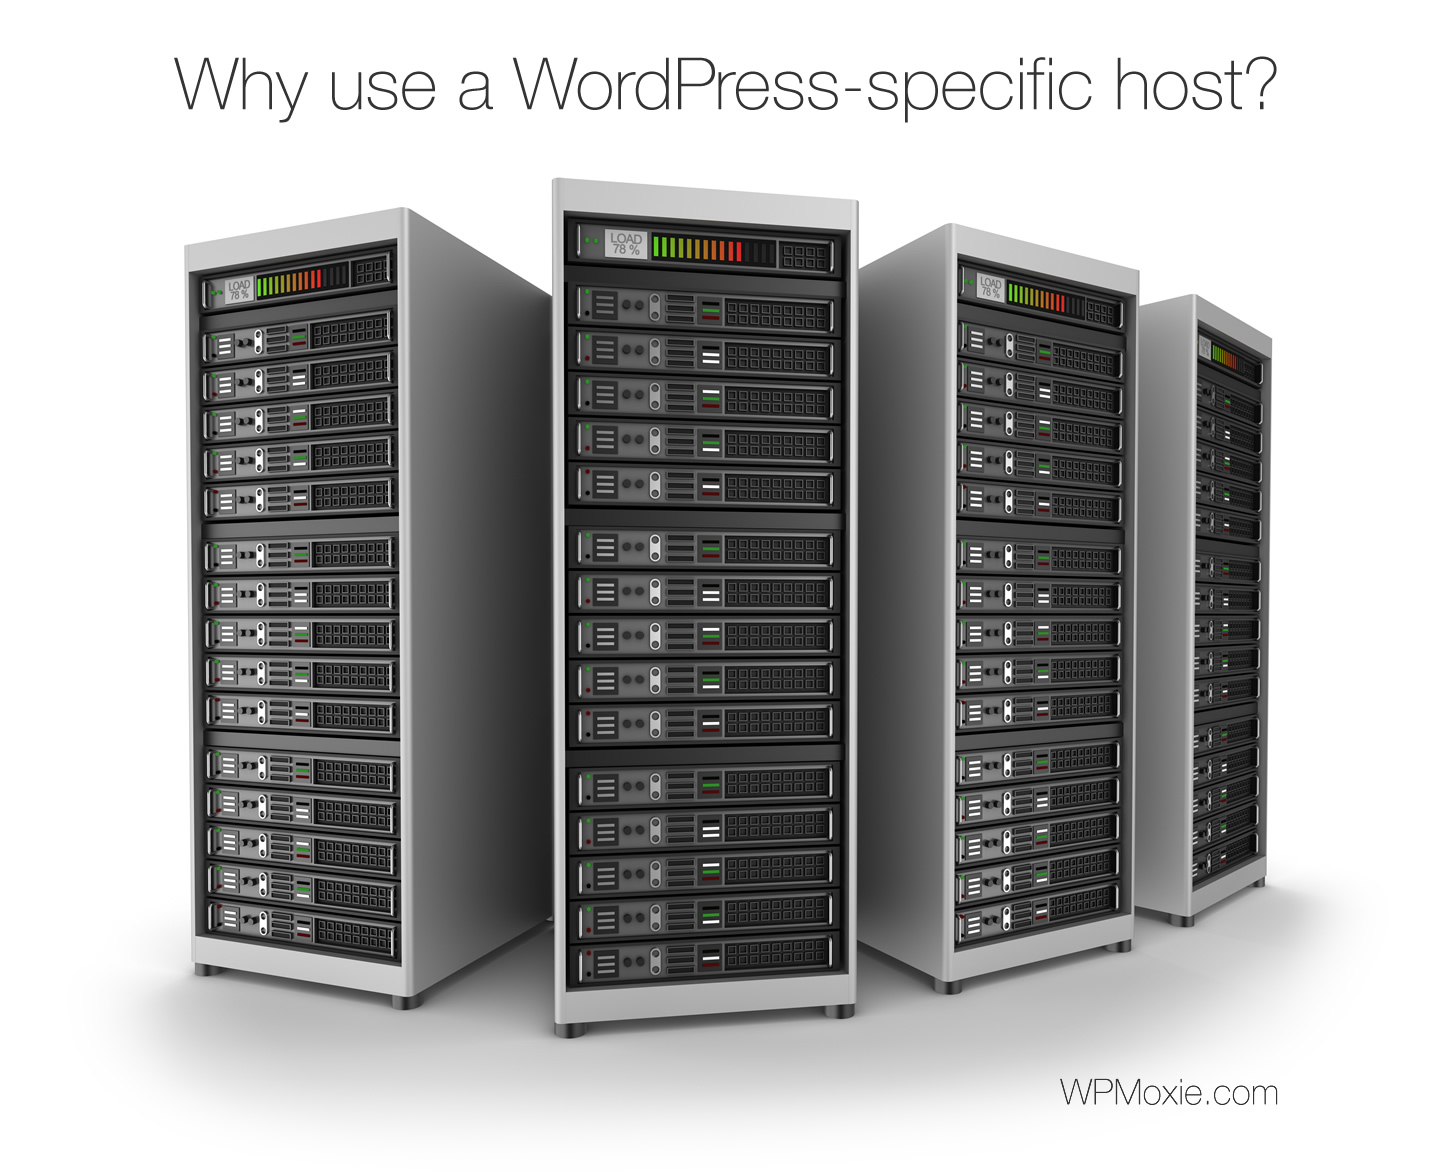 Why use a WordPress-specific host?